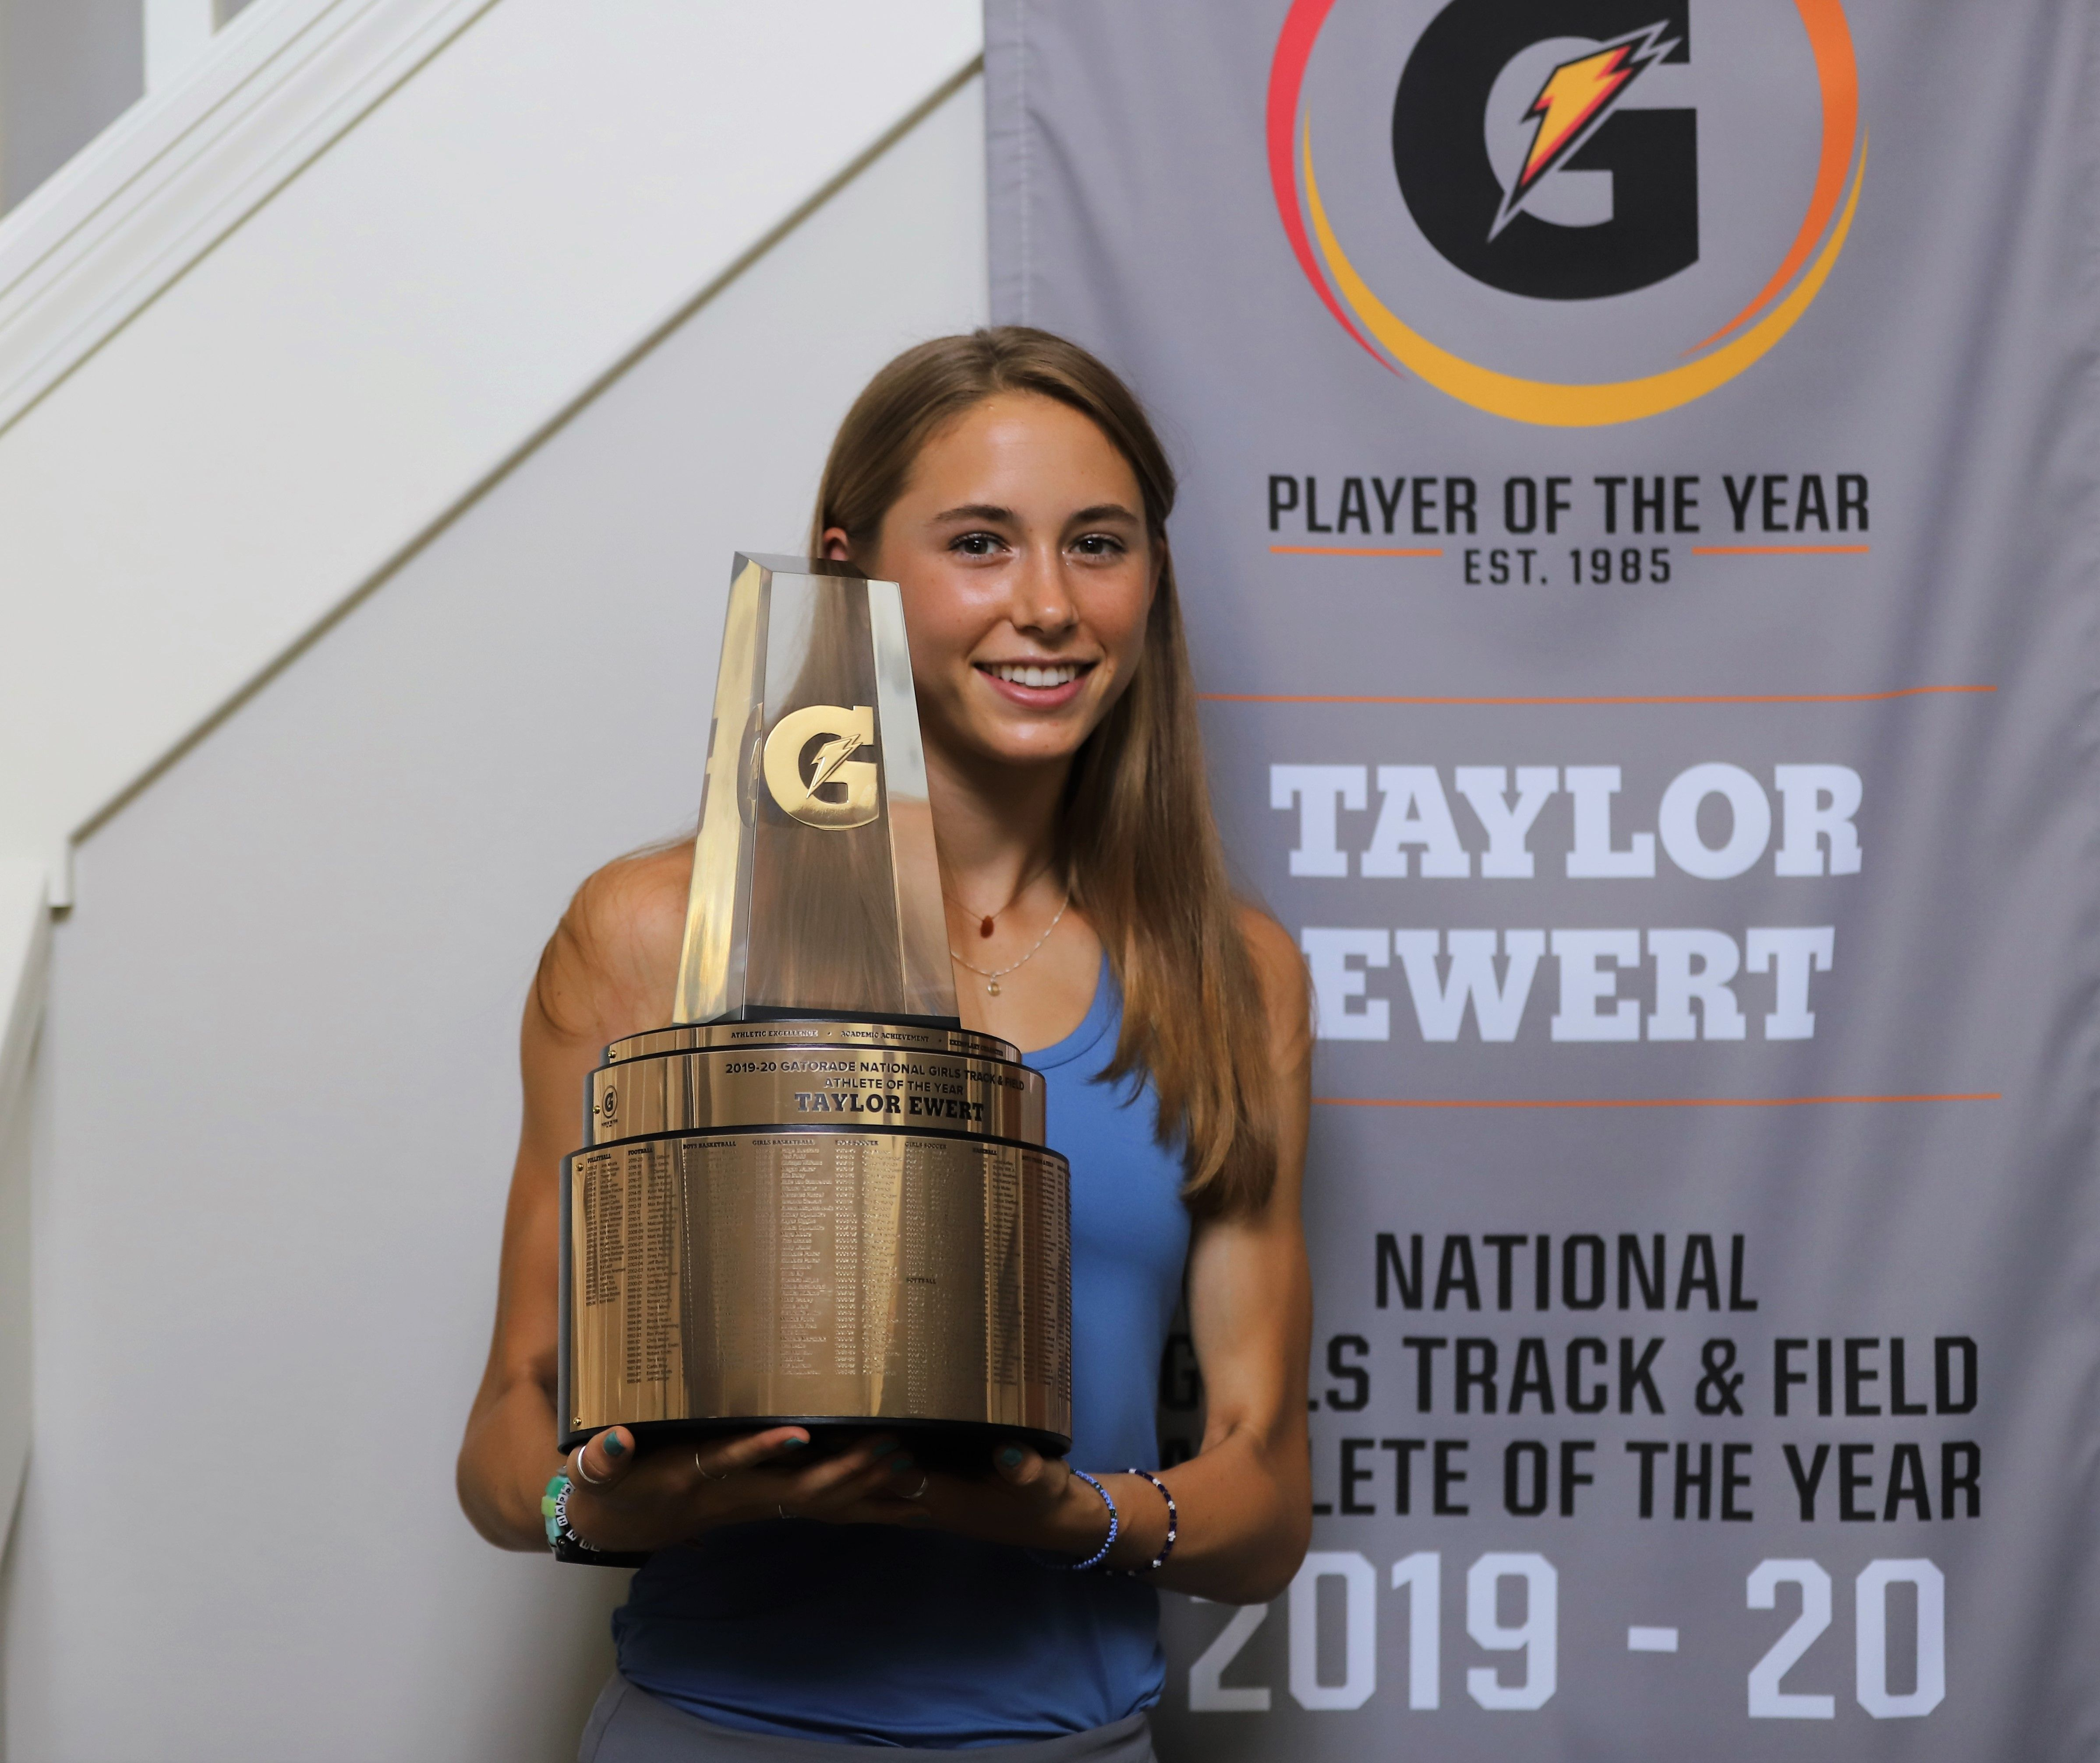 Taylor Ewert, Nico Young Named Gatorade Track & Field Athletes of the Year